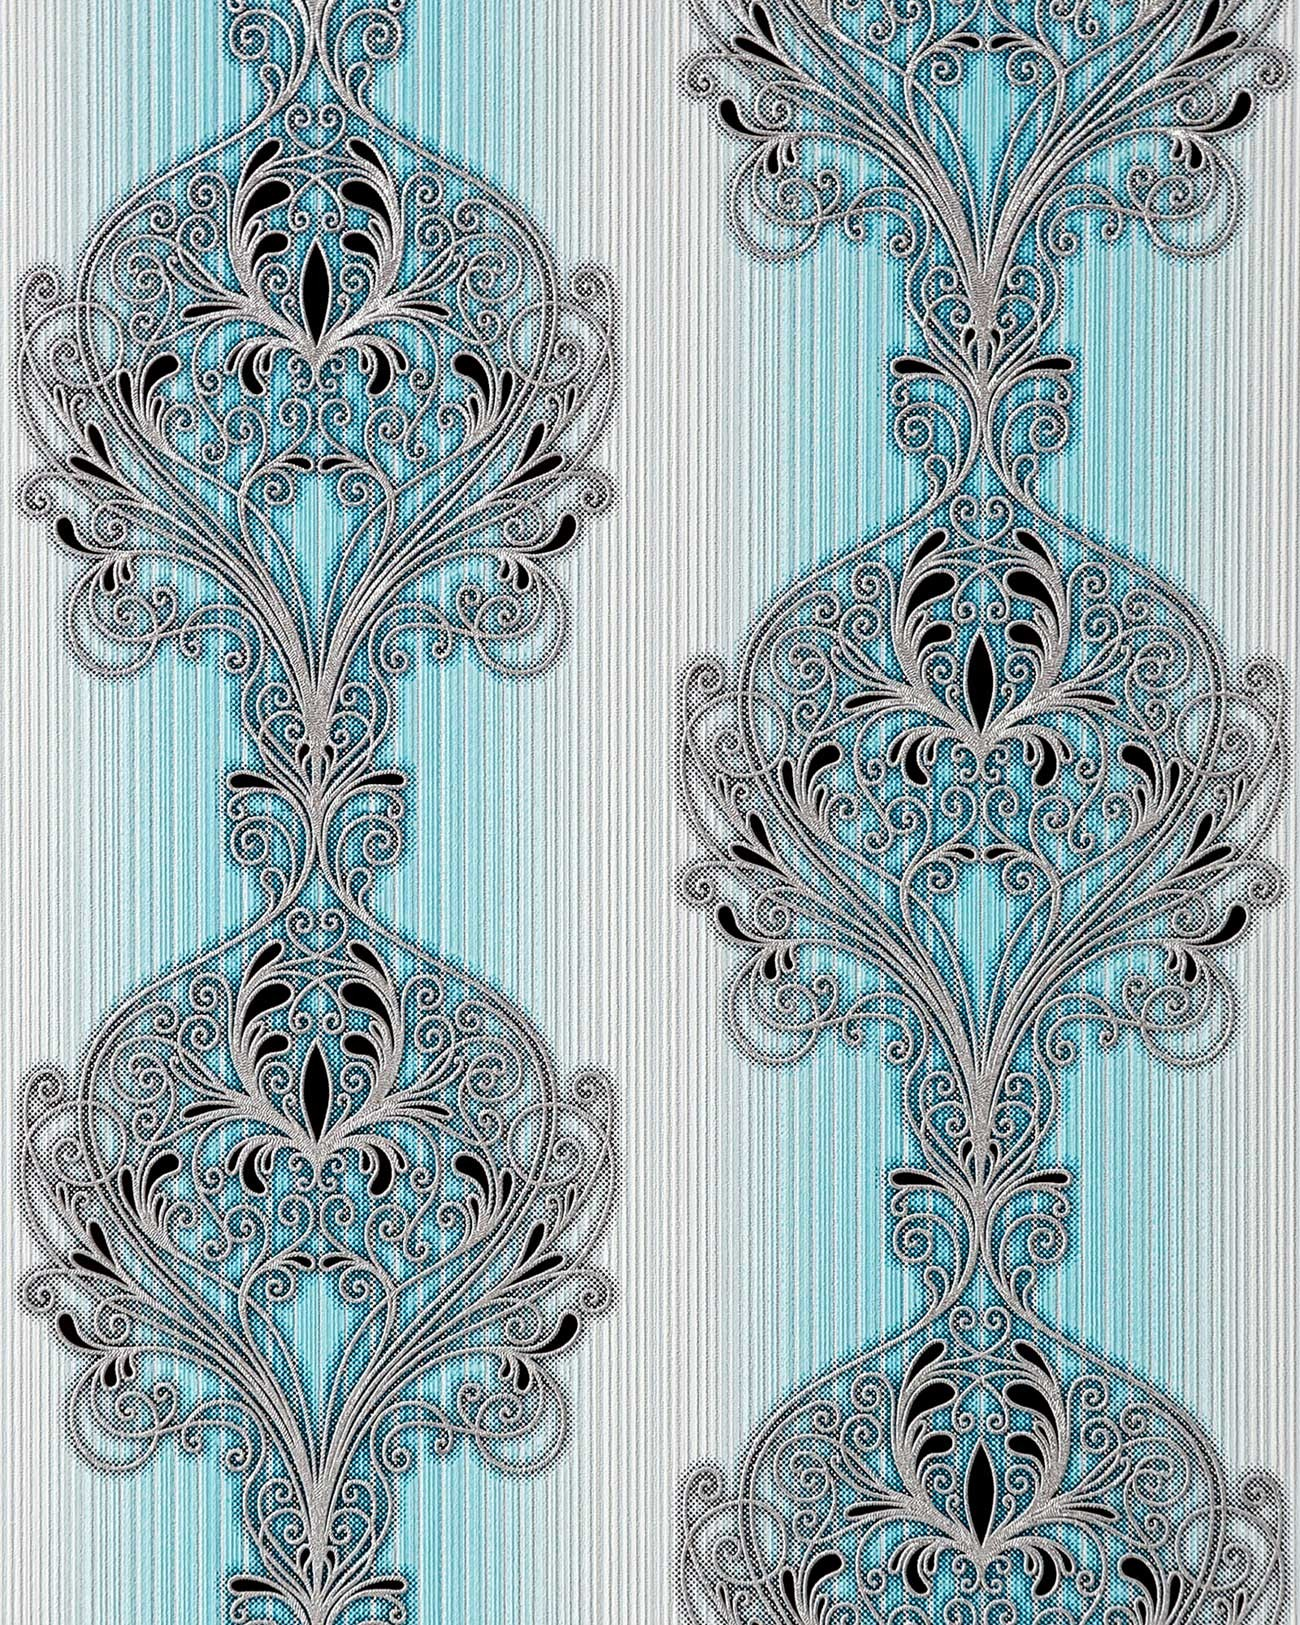 edem 096 22 tapete barock damask ornament designs t rkis blau silber schwarz ebay. Black Bedroom Furniture Sets. Home Design Ideas